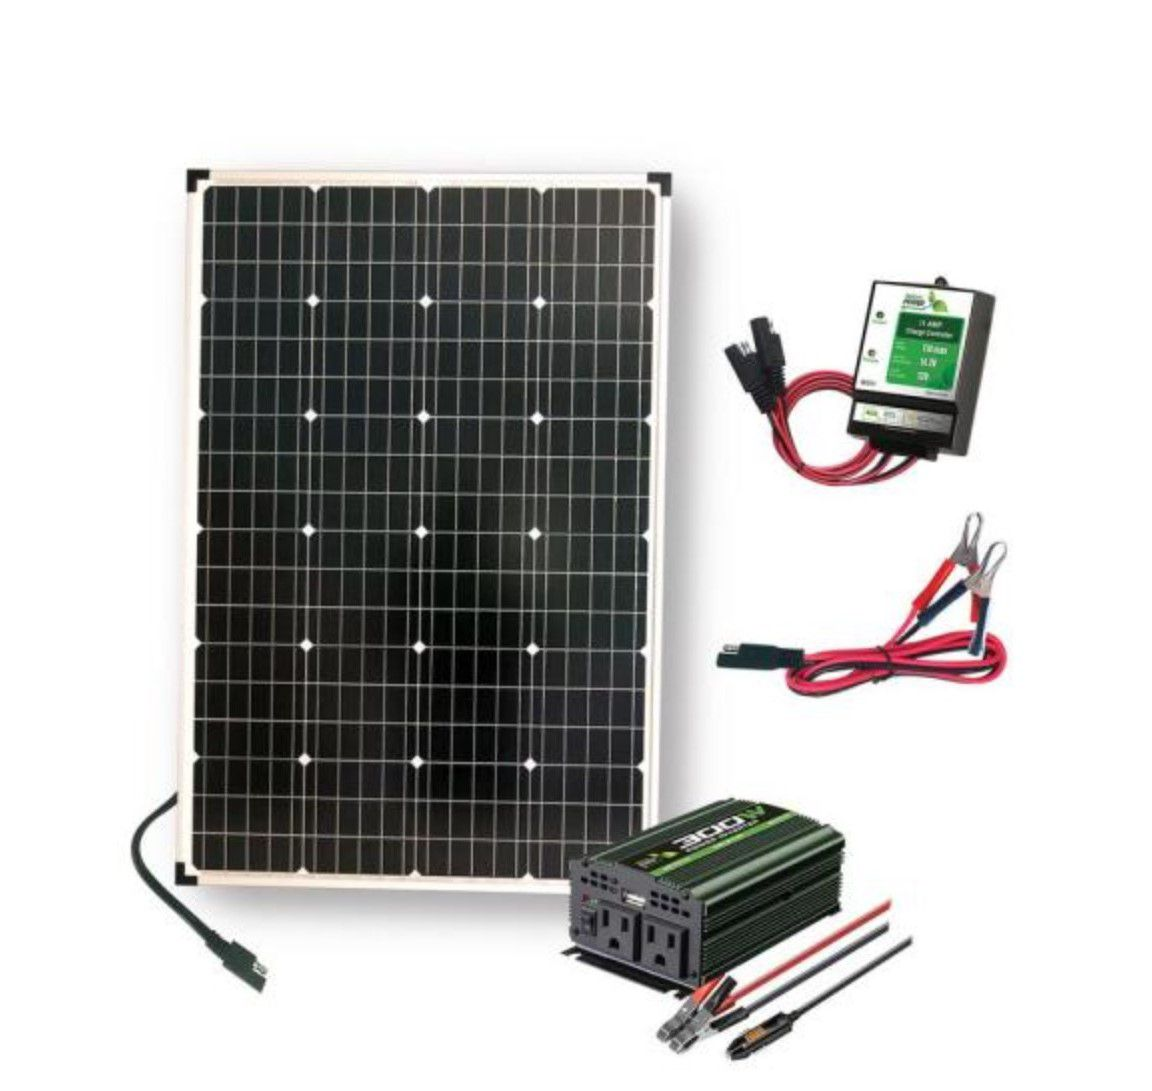 Nature Power 110W Polycrystalline Solar Panel with Inverter and Charge Controller